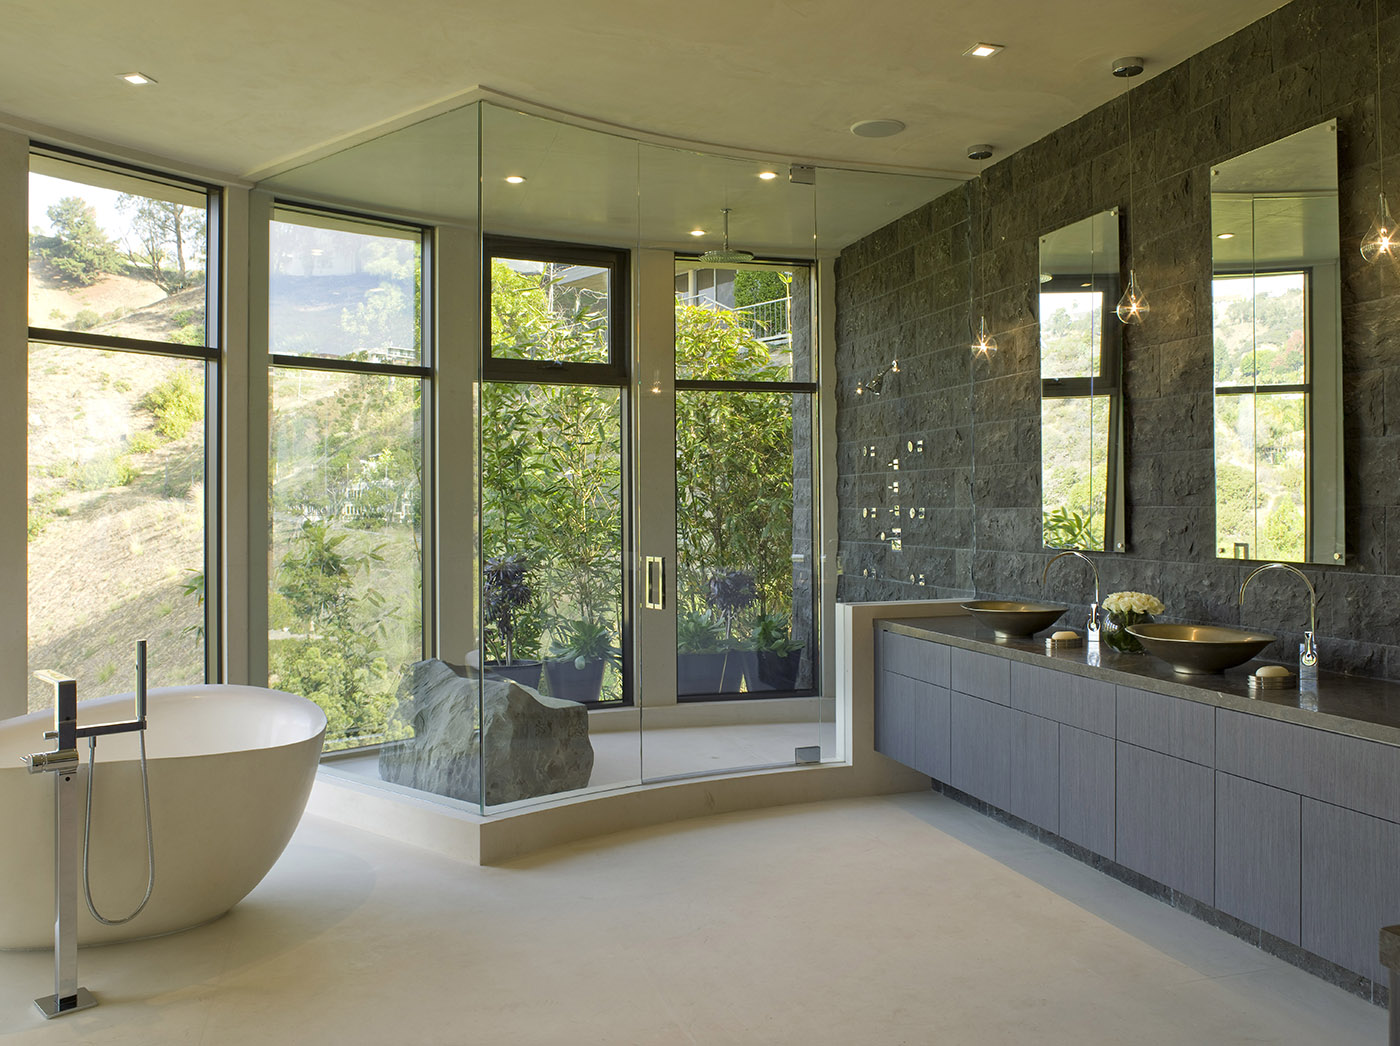 Hollywood hills master bathroom design project the design - Hollywood Hills Master Bathroom Design Project The Design 3